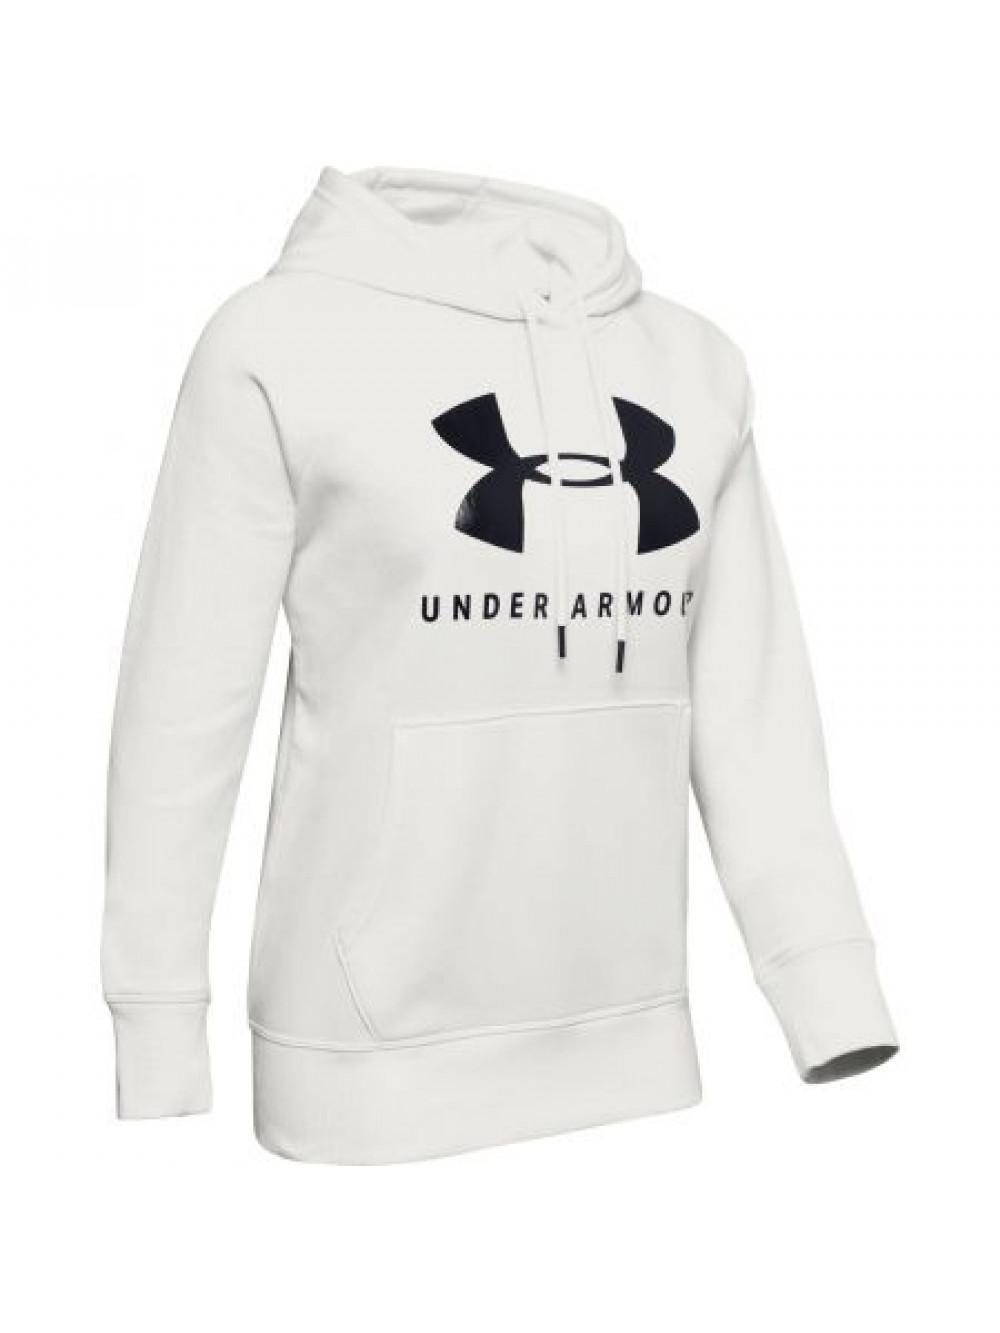 Damen Sweatshirt Under Armour Tech Hoody Weiß